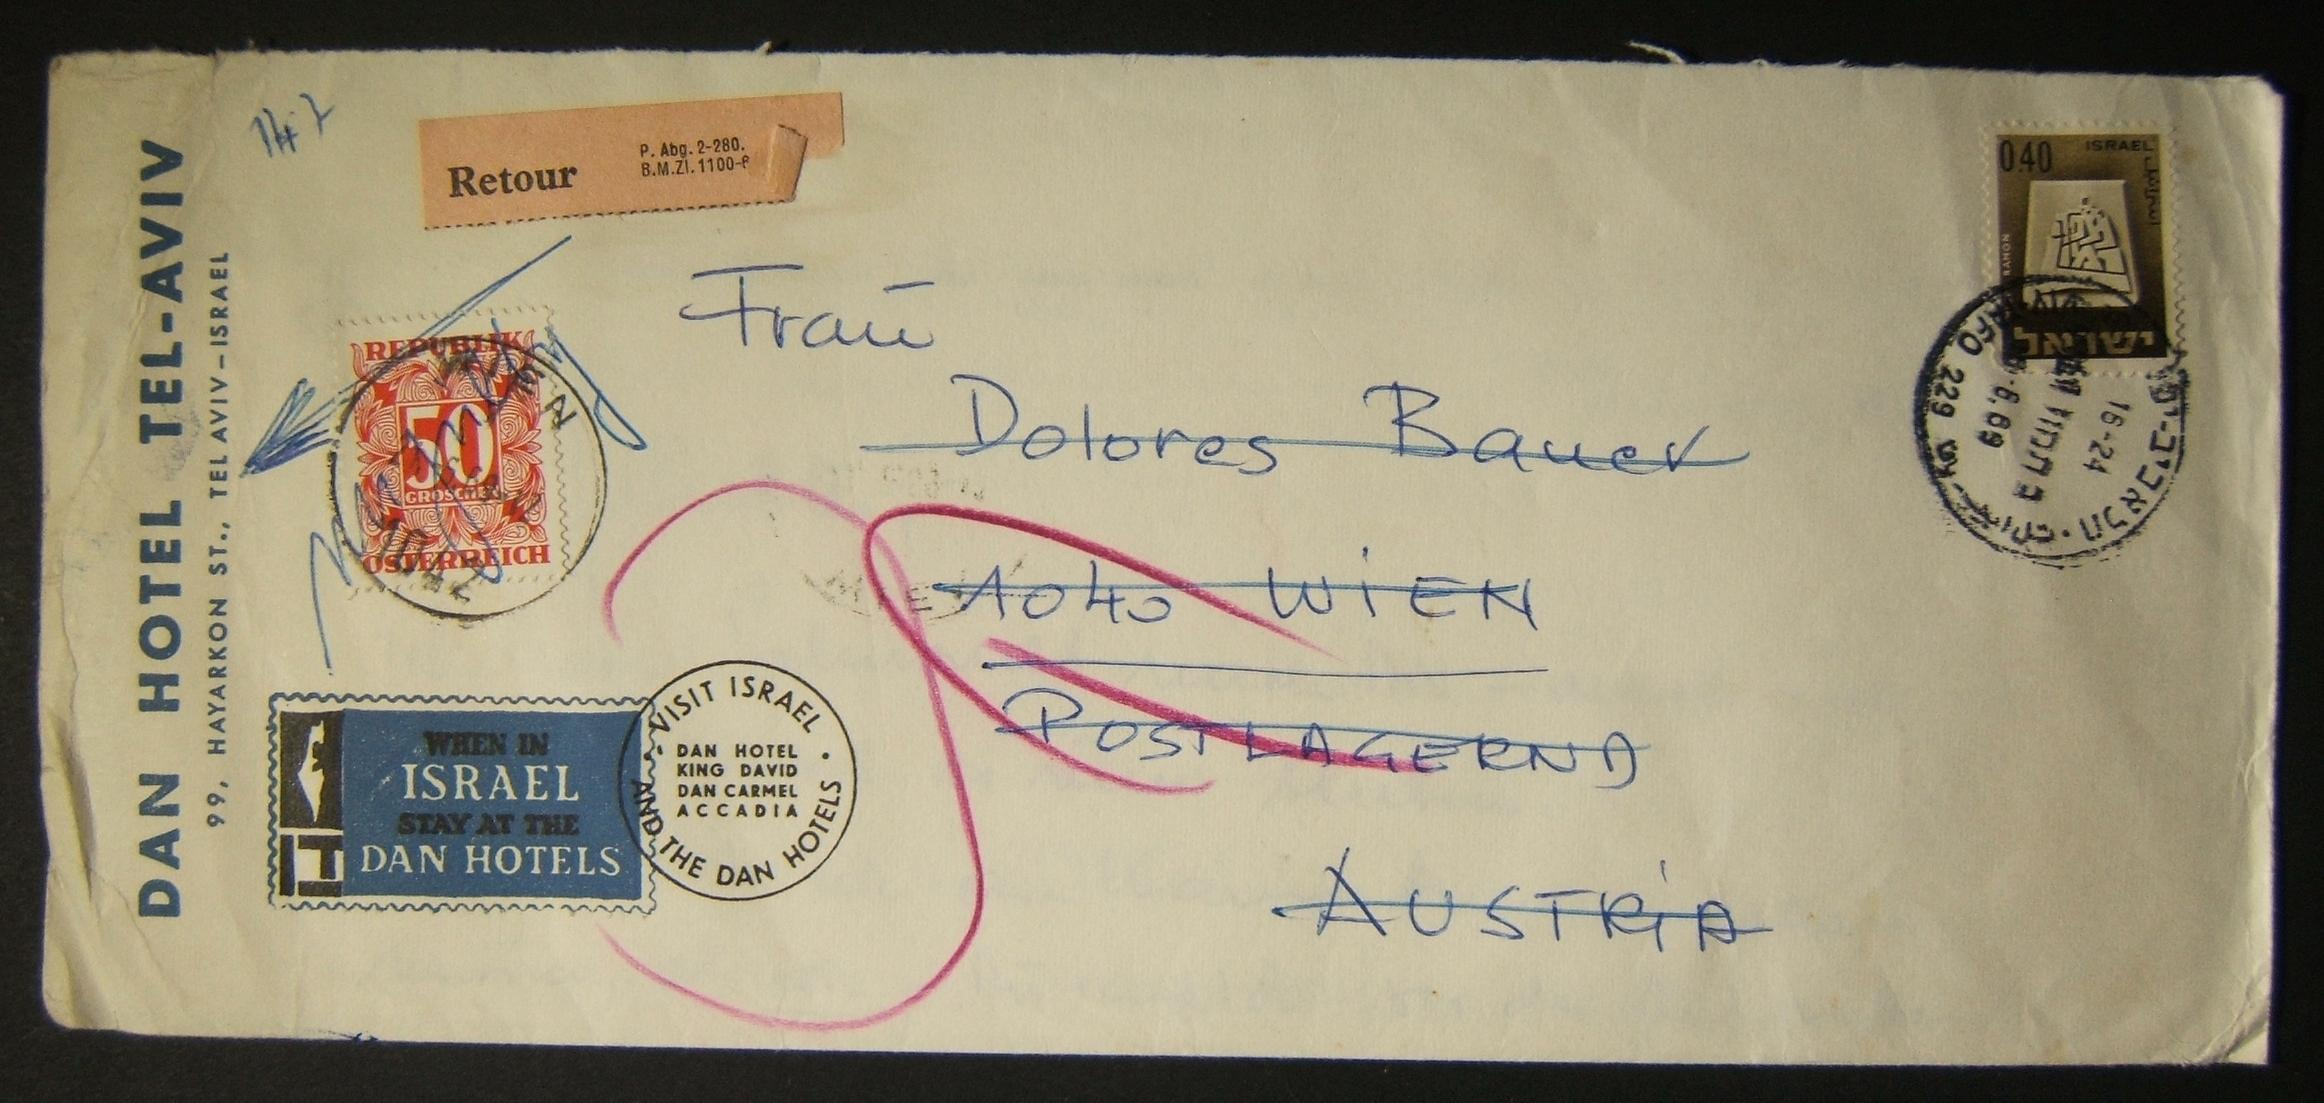 1969 returned taxed mail to Austria: 18-6-69 airmail Dan Hotel stationary cover ex TLV to VIENNA (